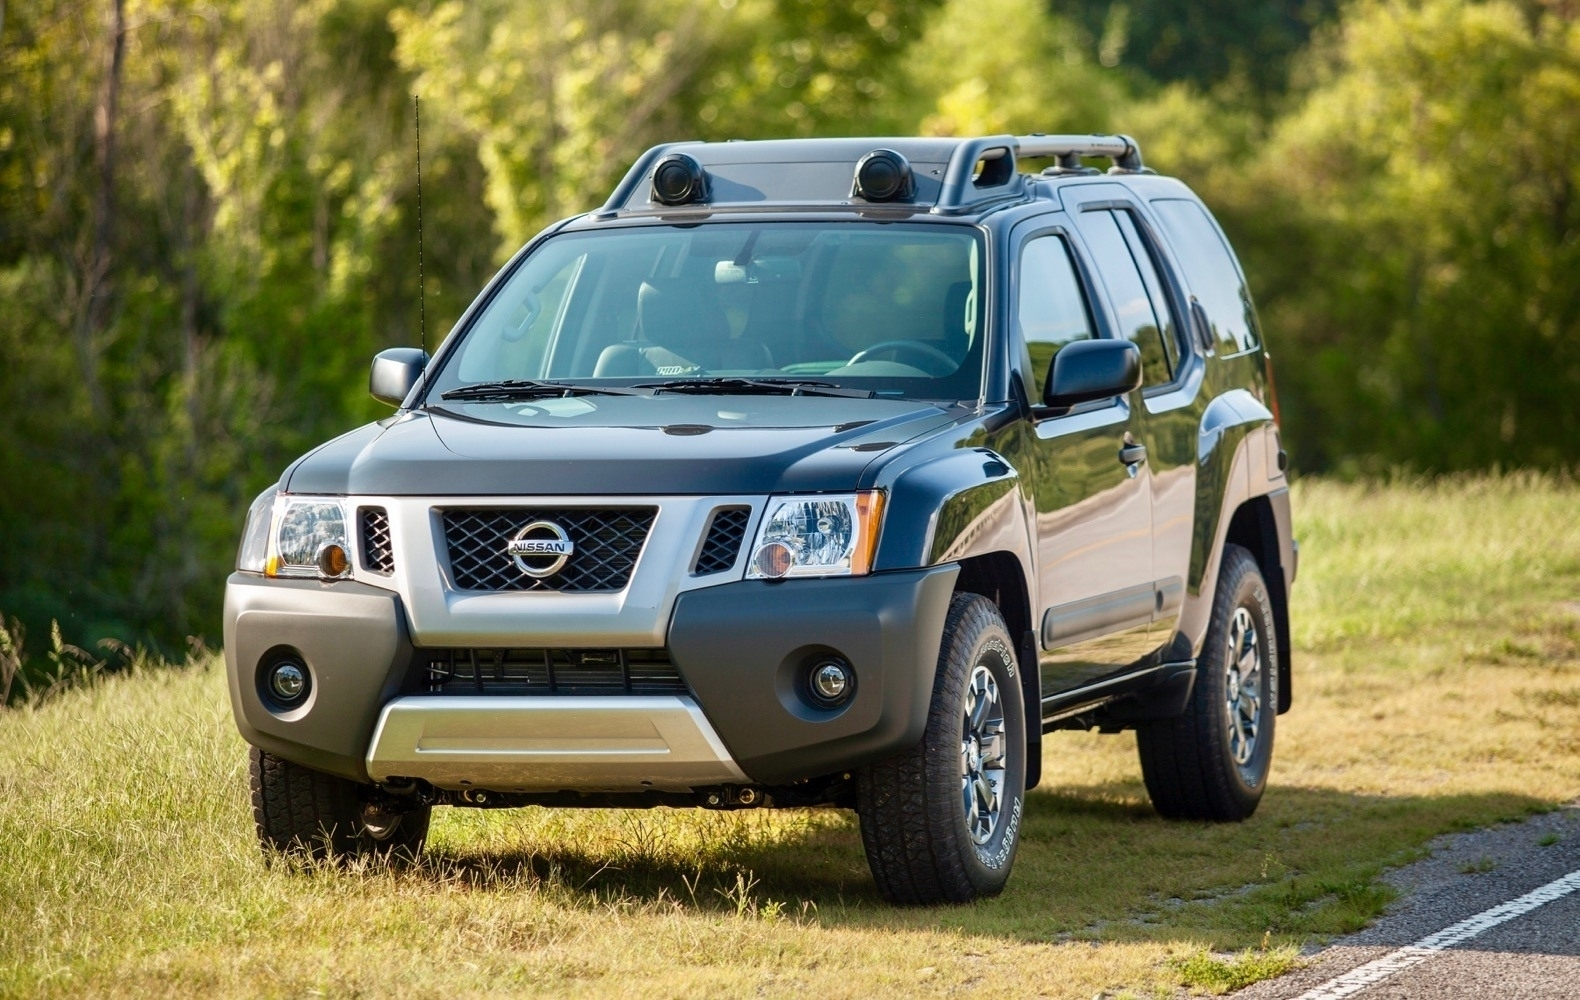 71 All New 2020 Nissan Xterra Configurations